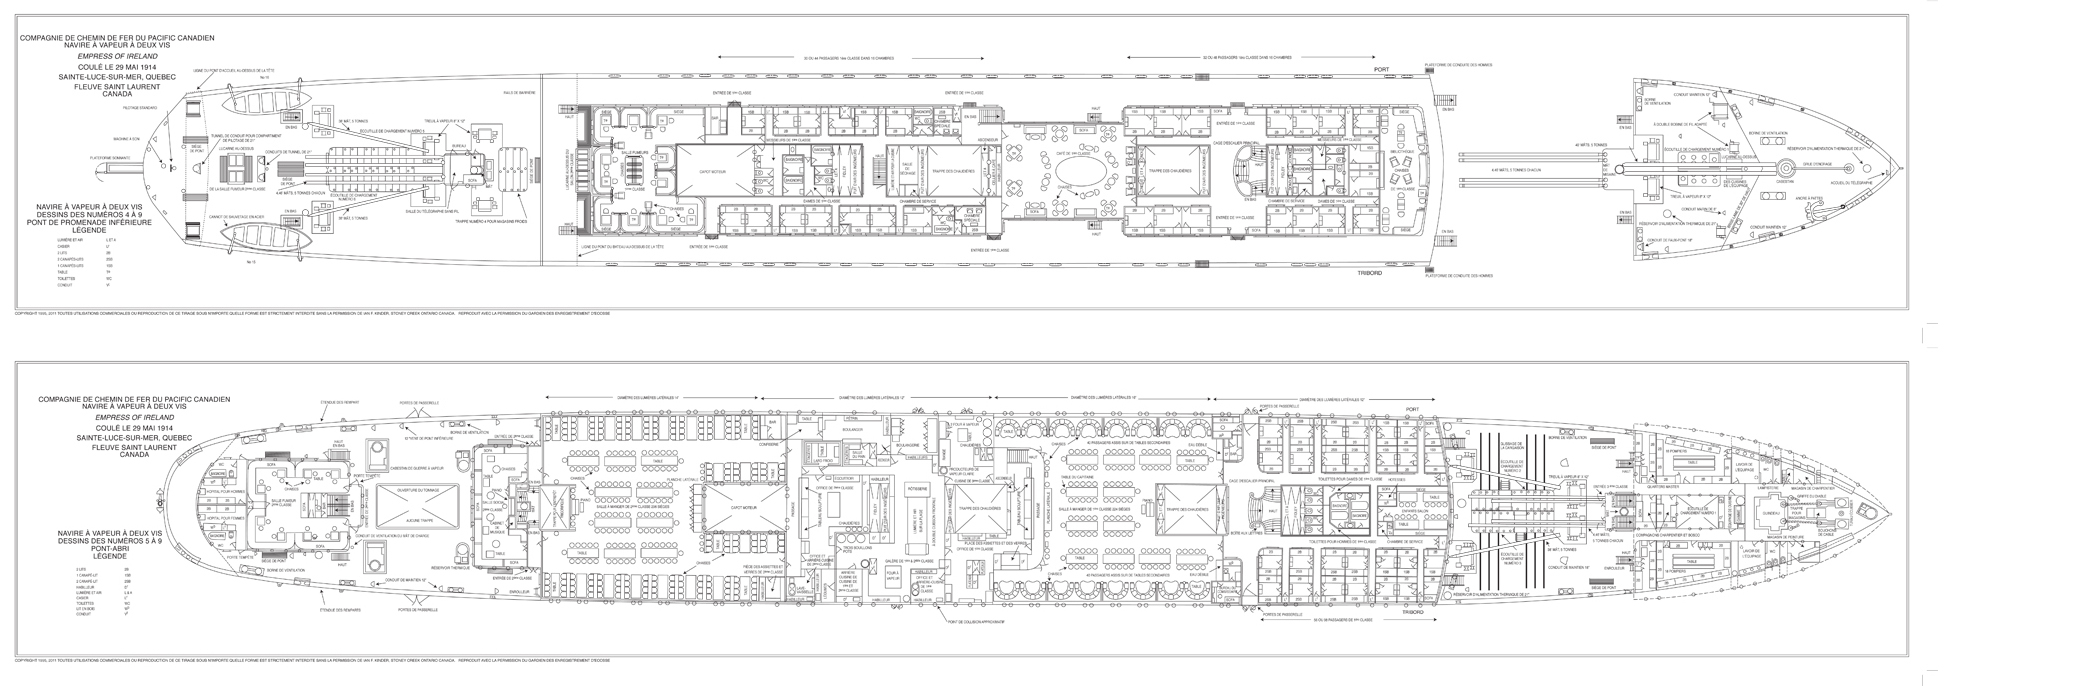 The empress of ireland fench deck plan collection the for Deck plans online